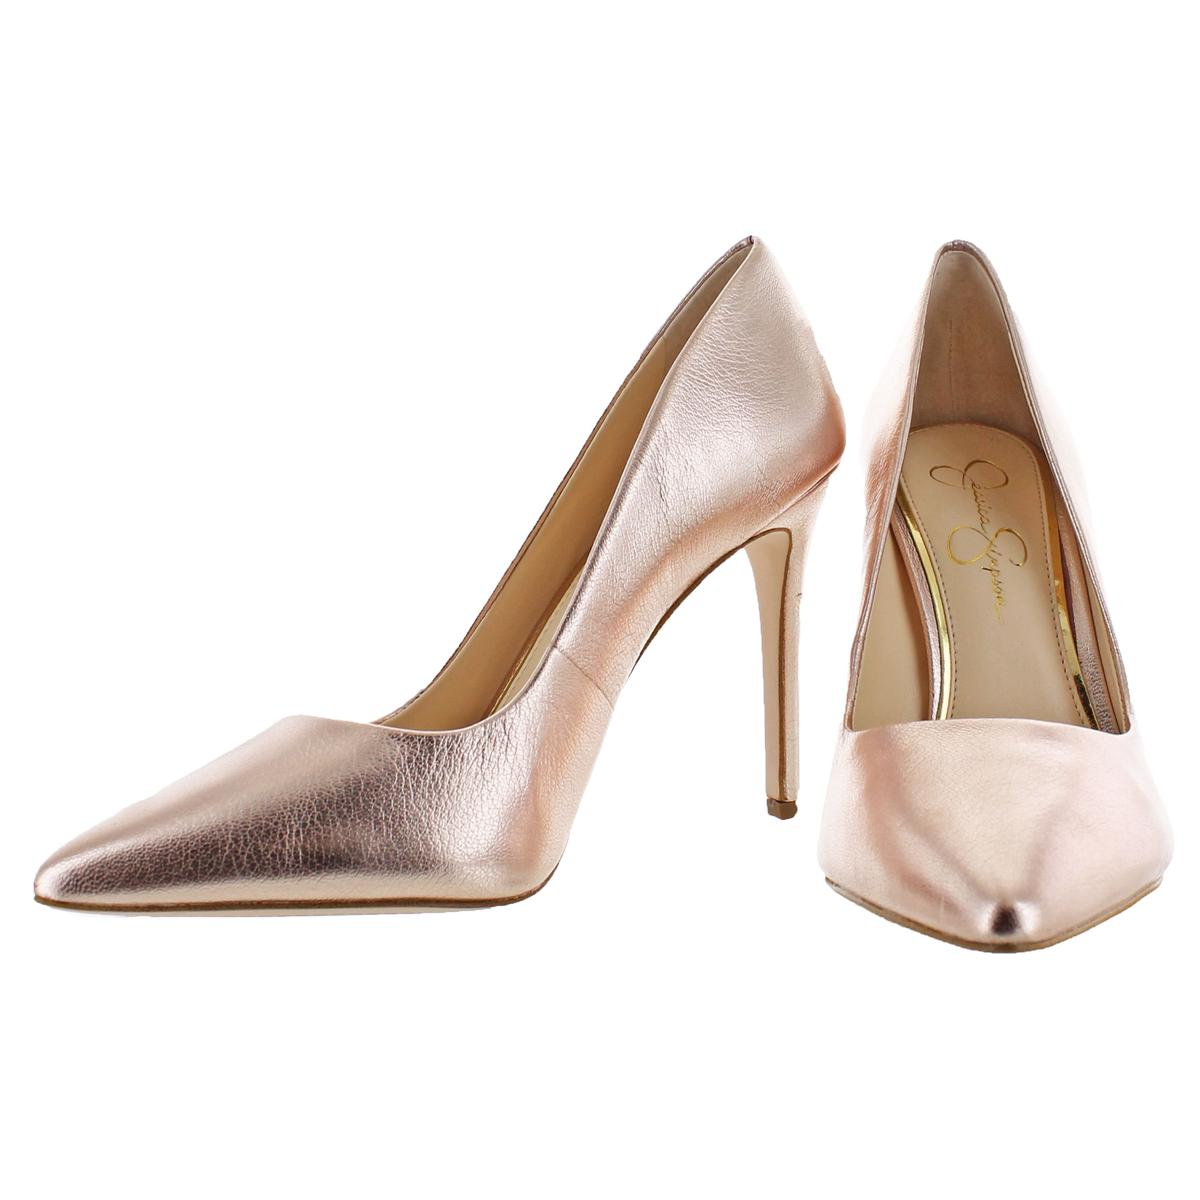 Jessica-Simpson-Praylee-Women-039-s-Pointed-Toe-Pumps-Shoes thumbnail 4